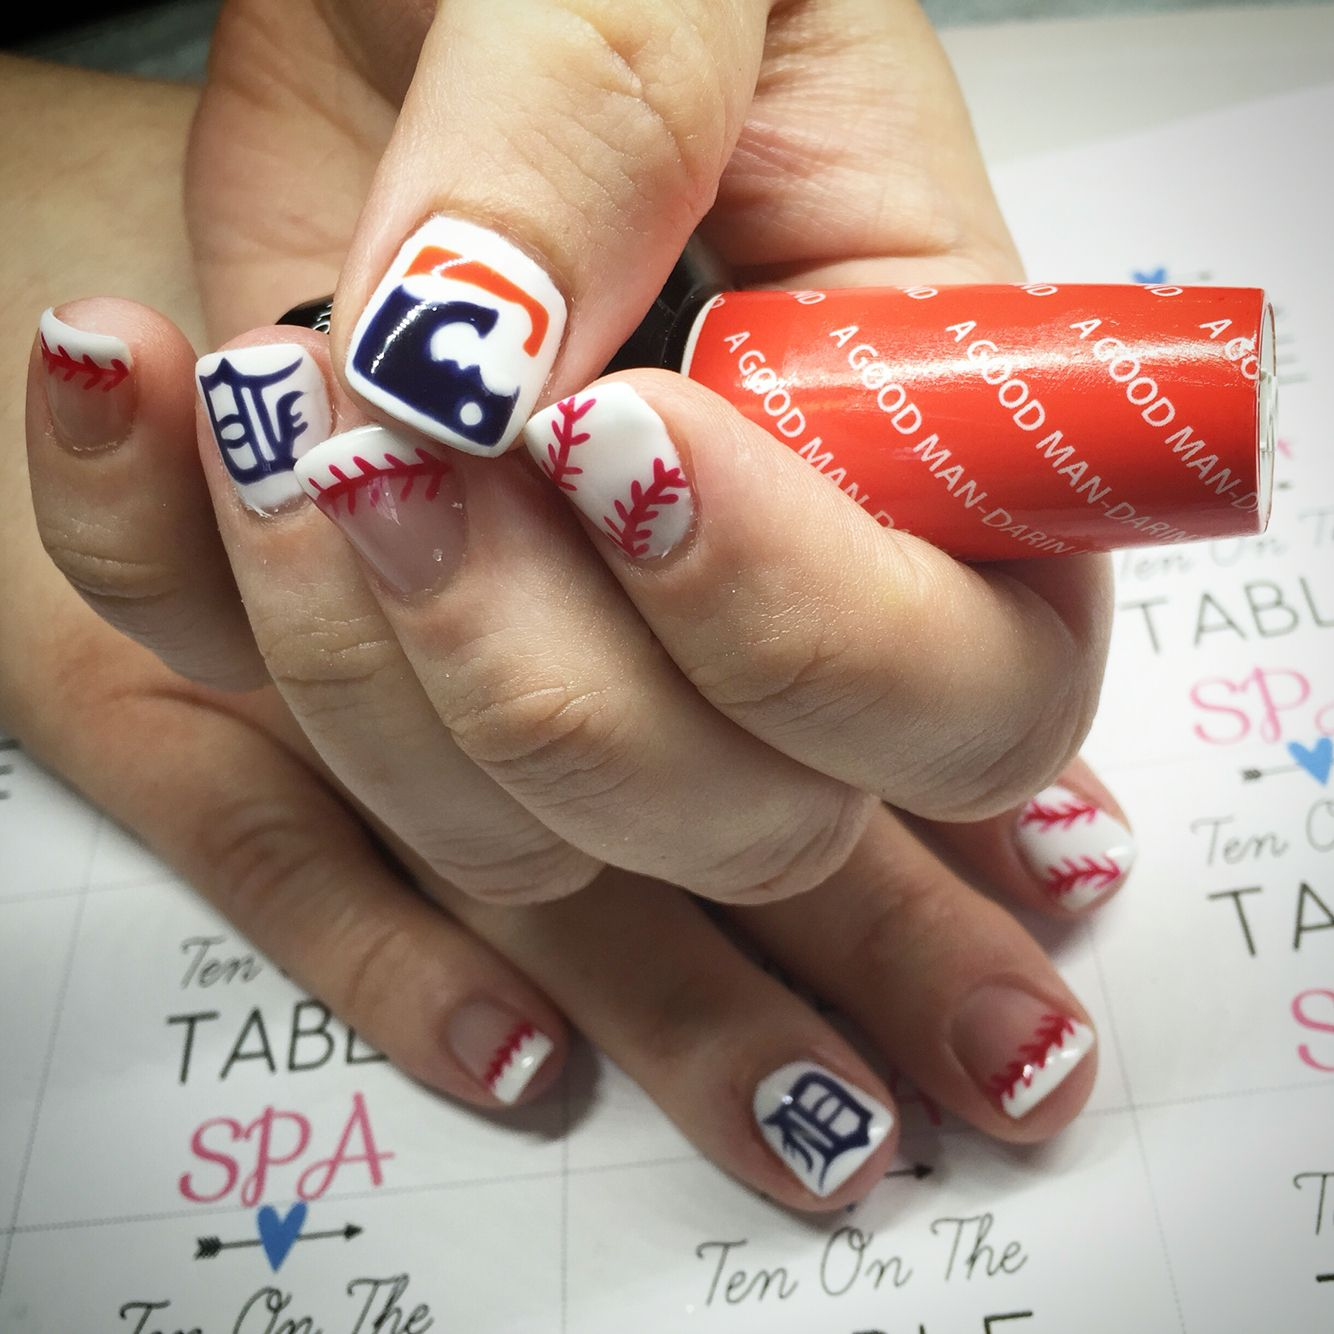 Detroit tiger nail art designs | Ten On The Table Spa | Pinterest ...